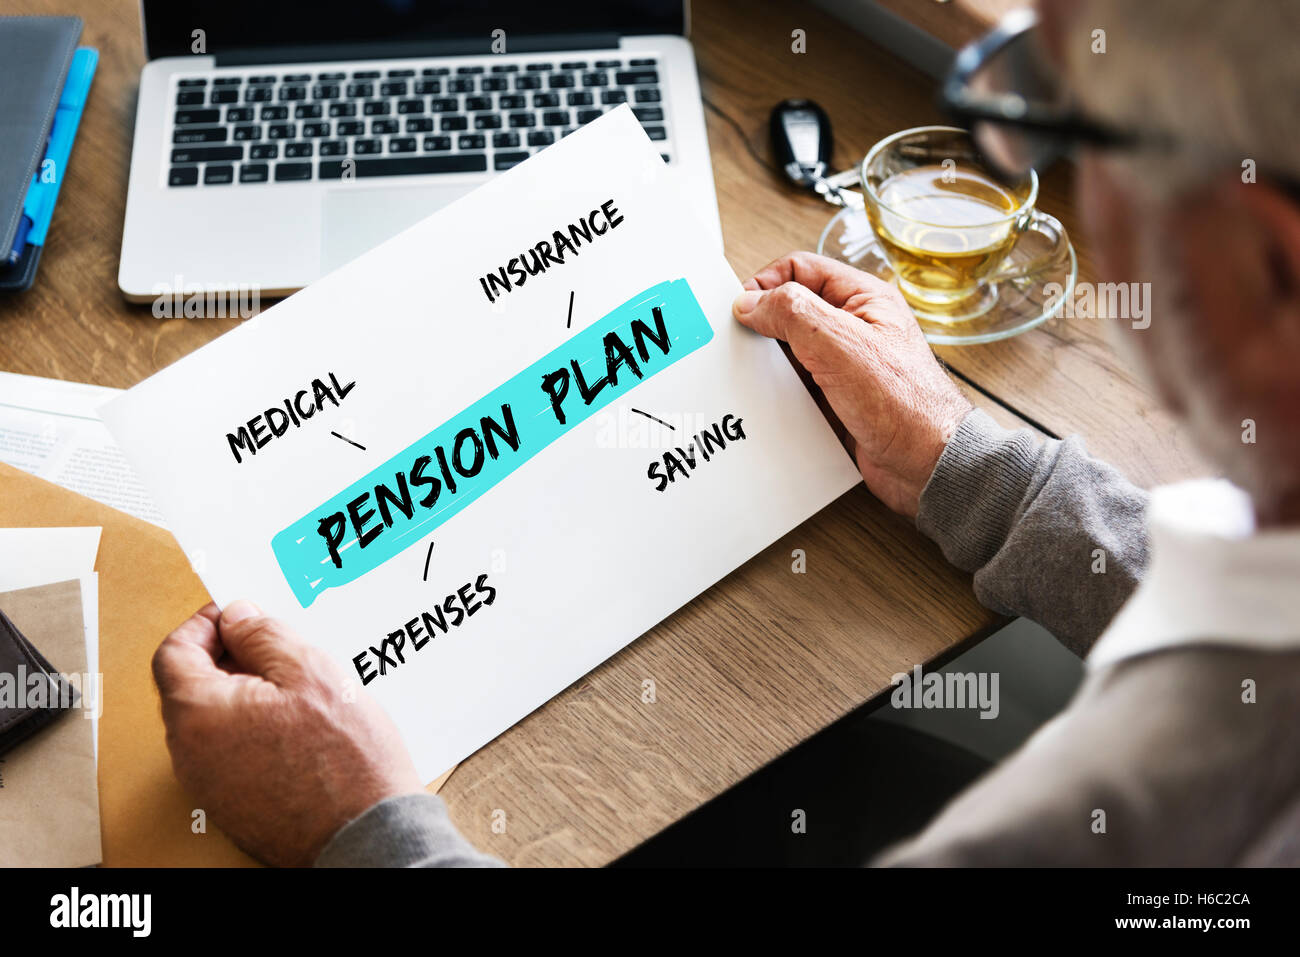 Pension Plan Investment Retirement Diagram Concept - Stock Image